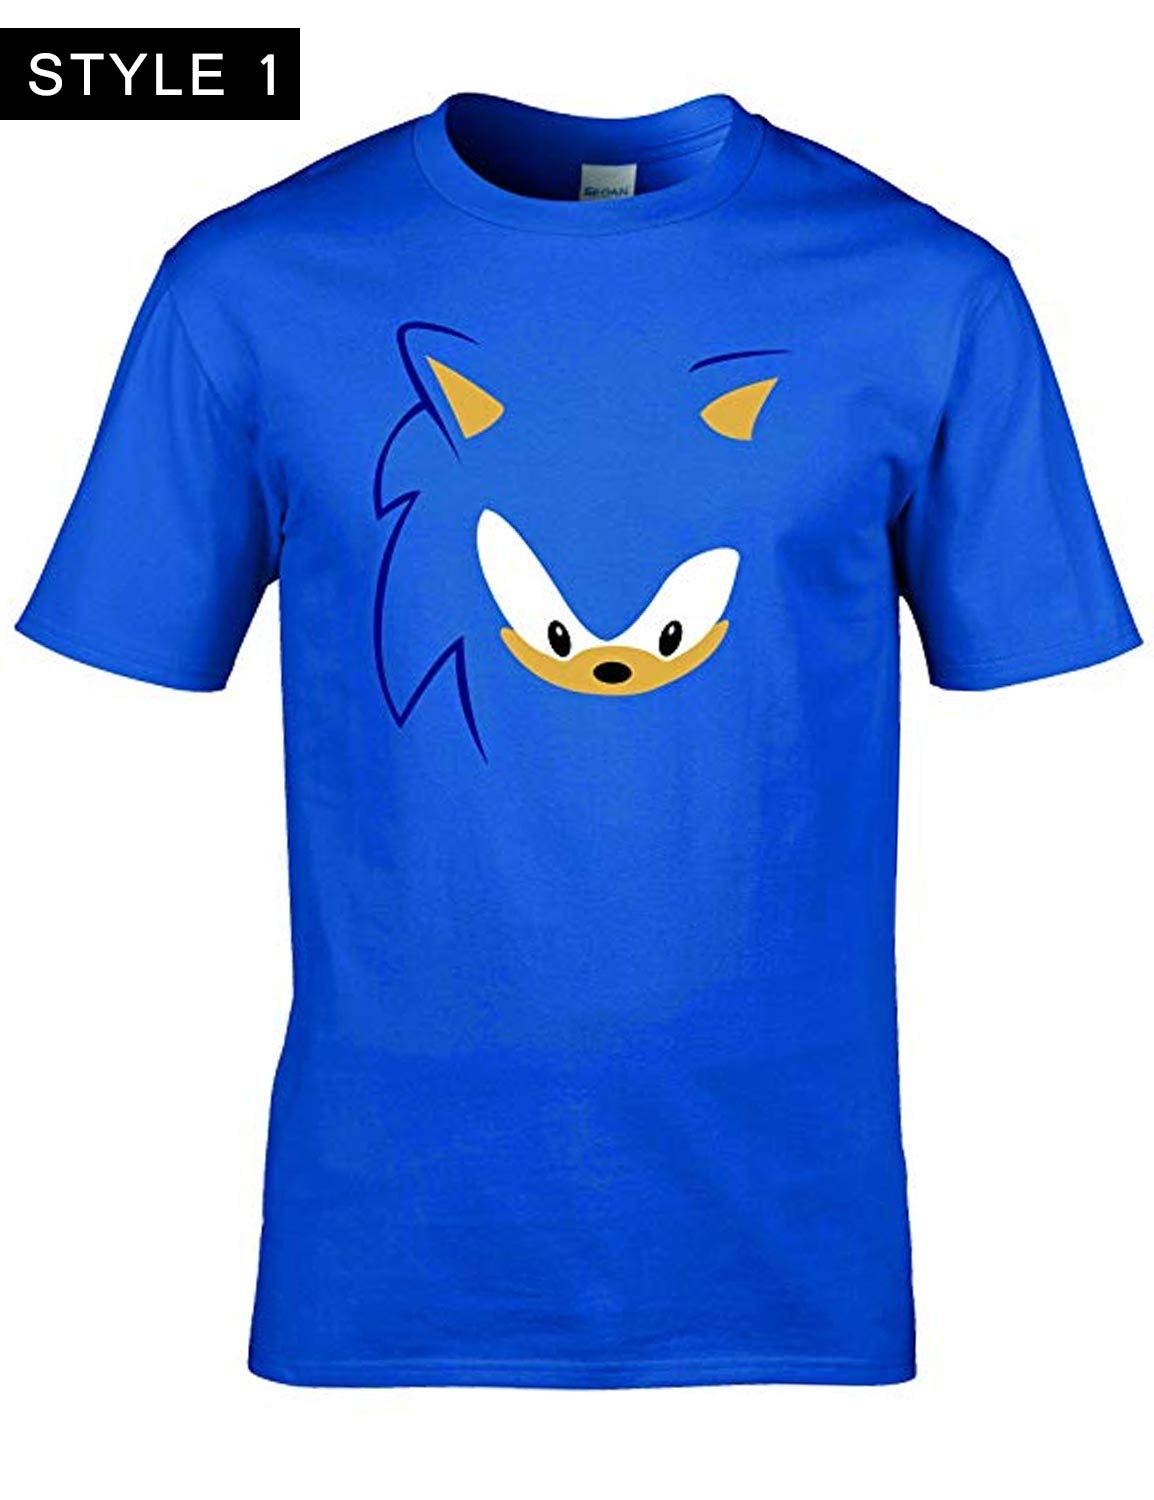 Sonic The Hedgehog Shirt Blue And Black Hleatherjackets